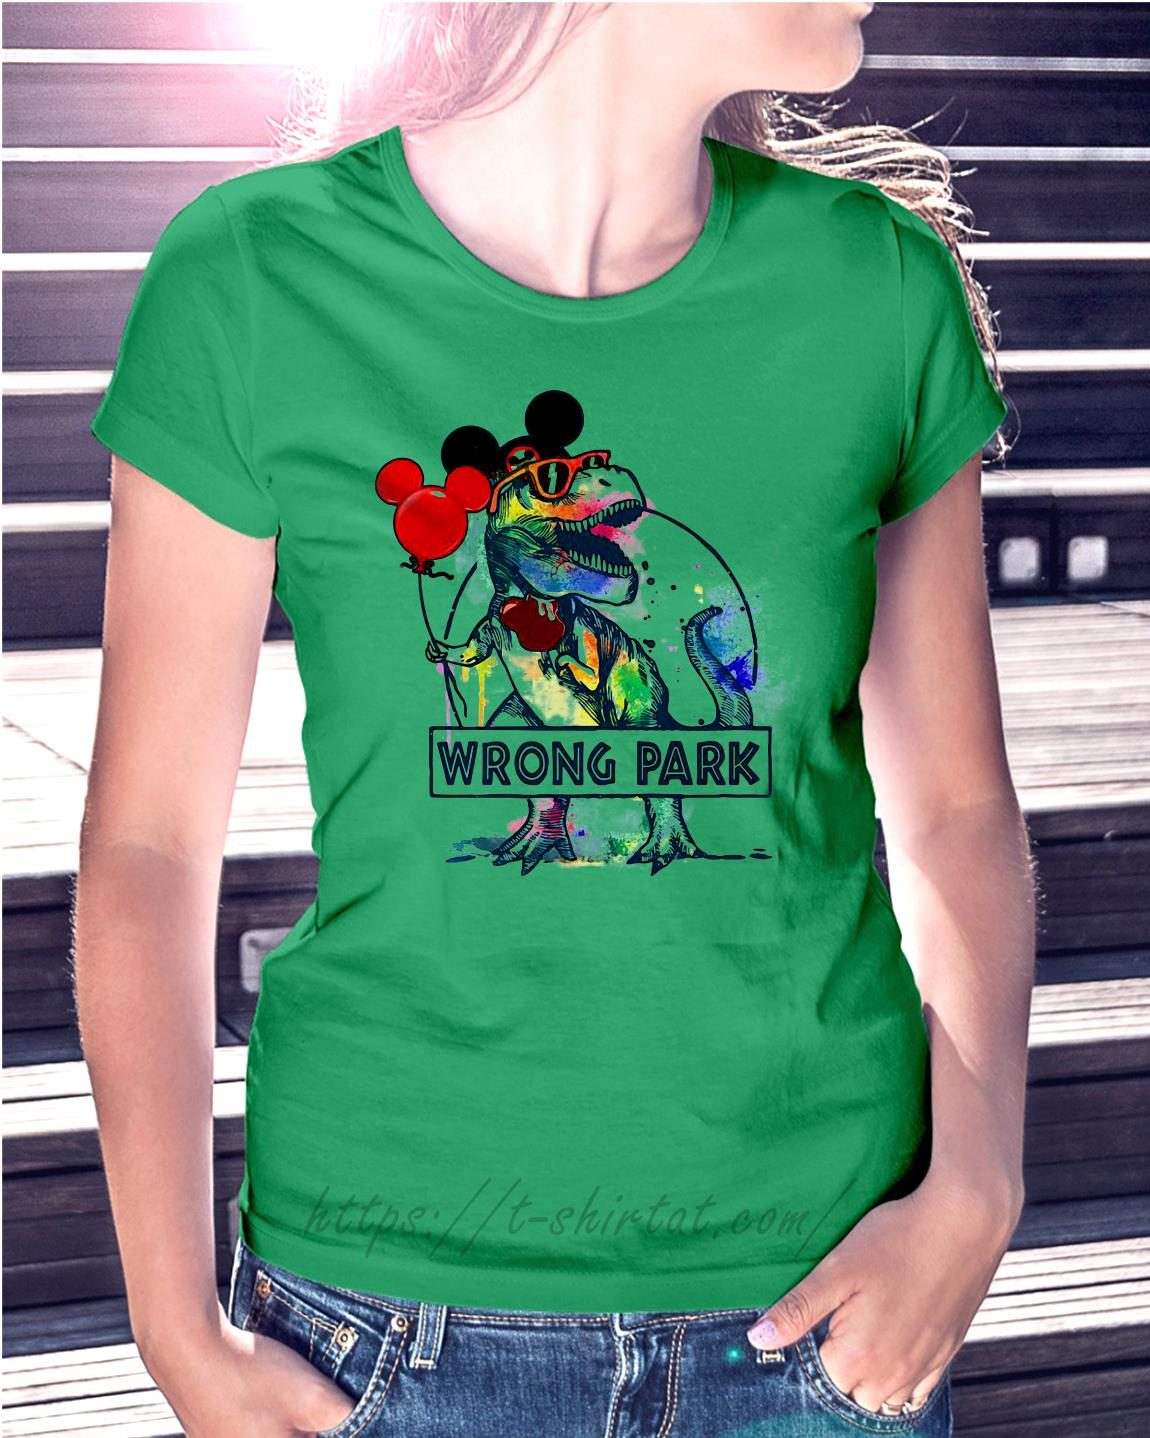 841061904 Dinosaur T-rex and Mickey Mouse wrong Park shirt, hoodie, sweater